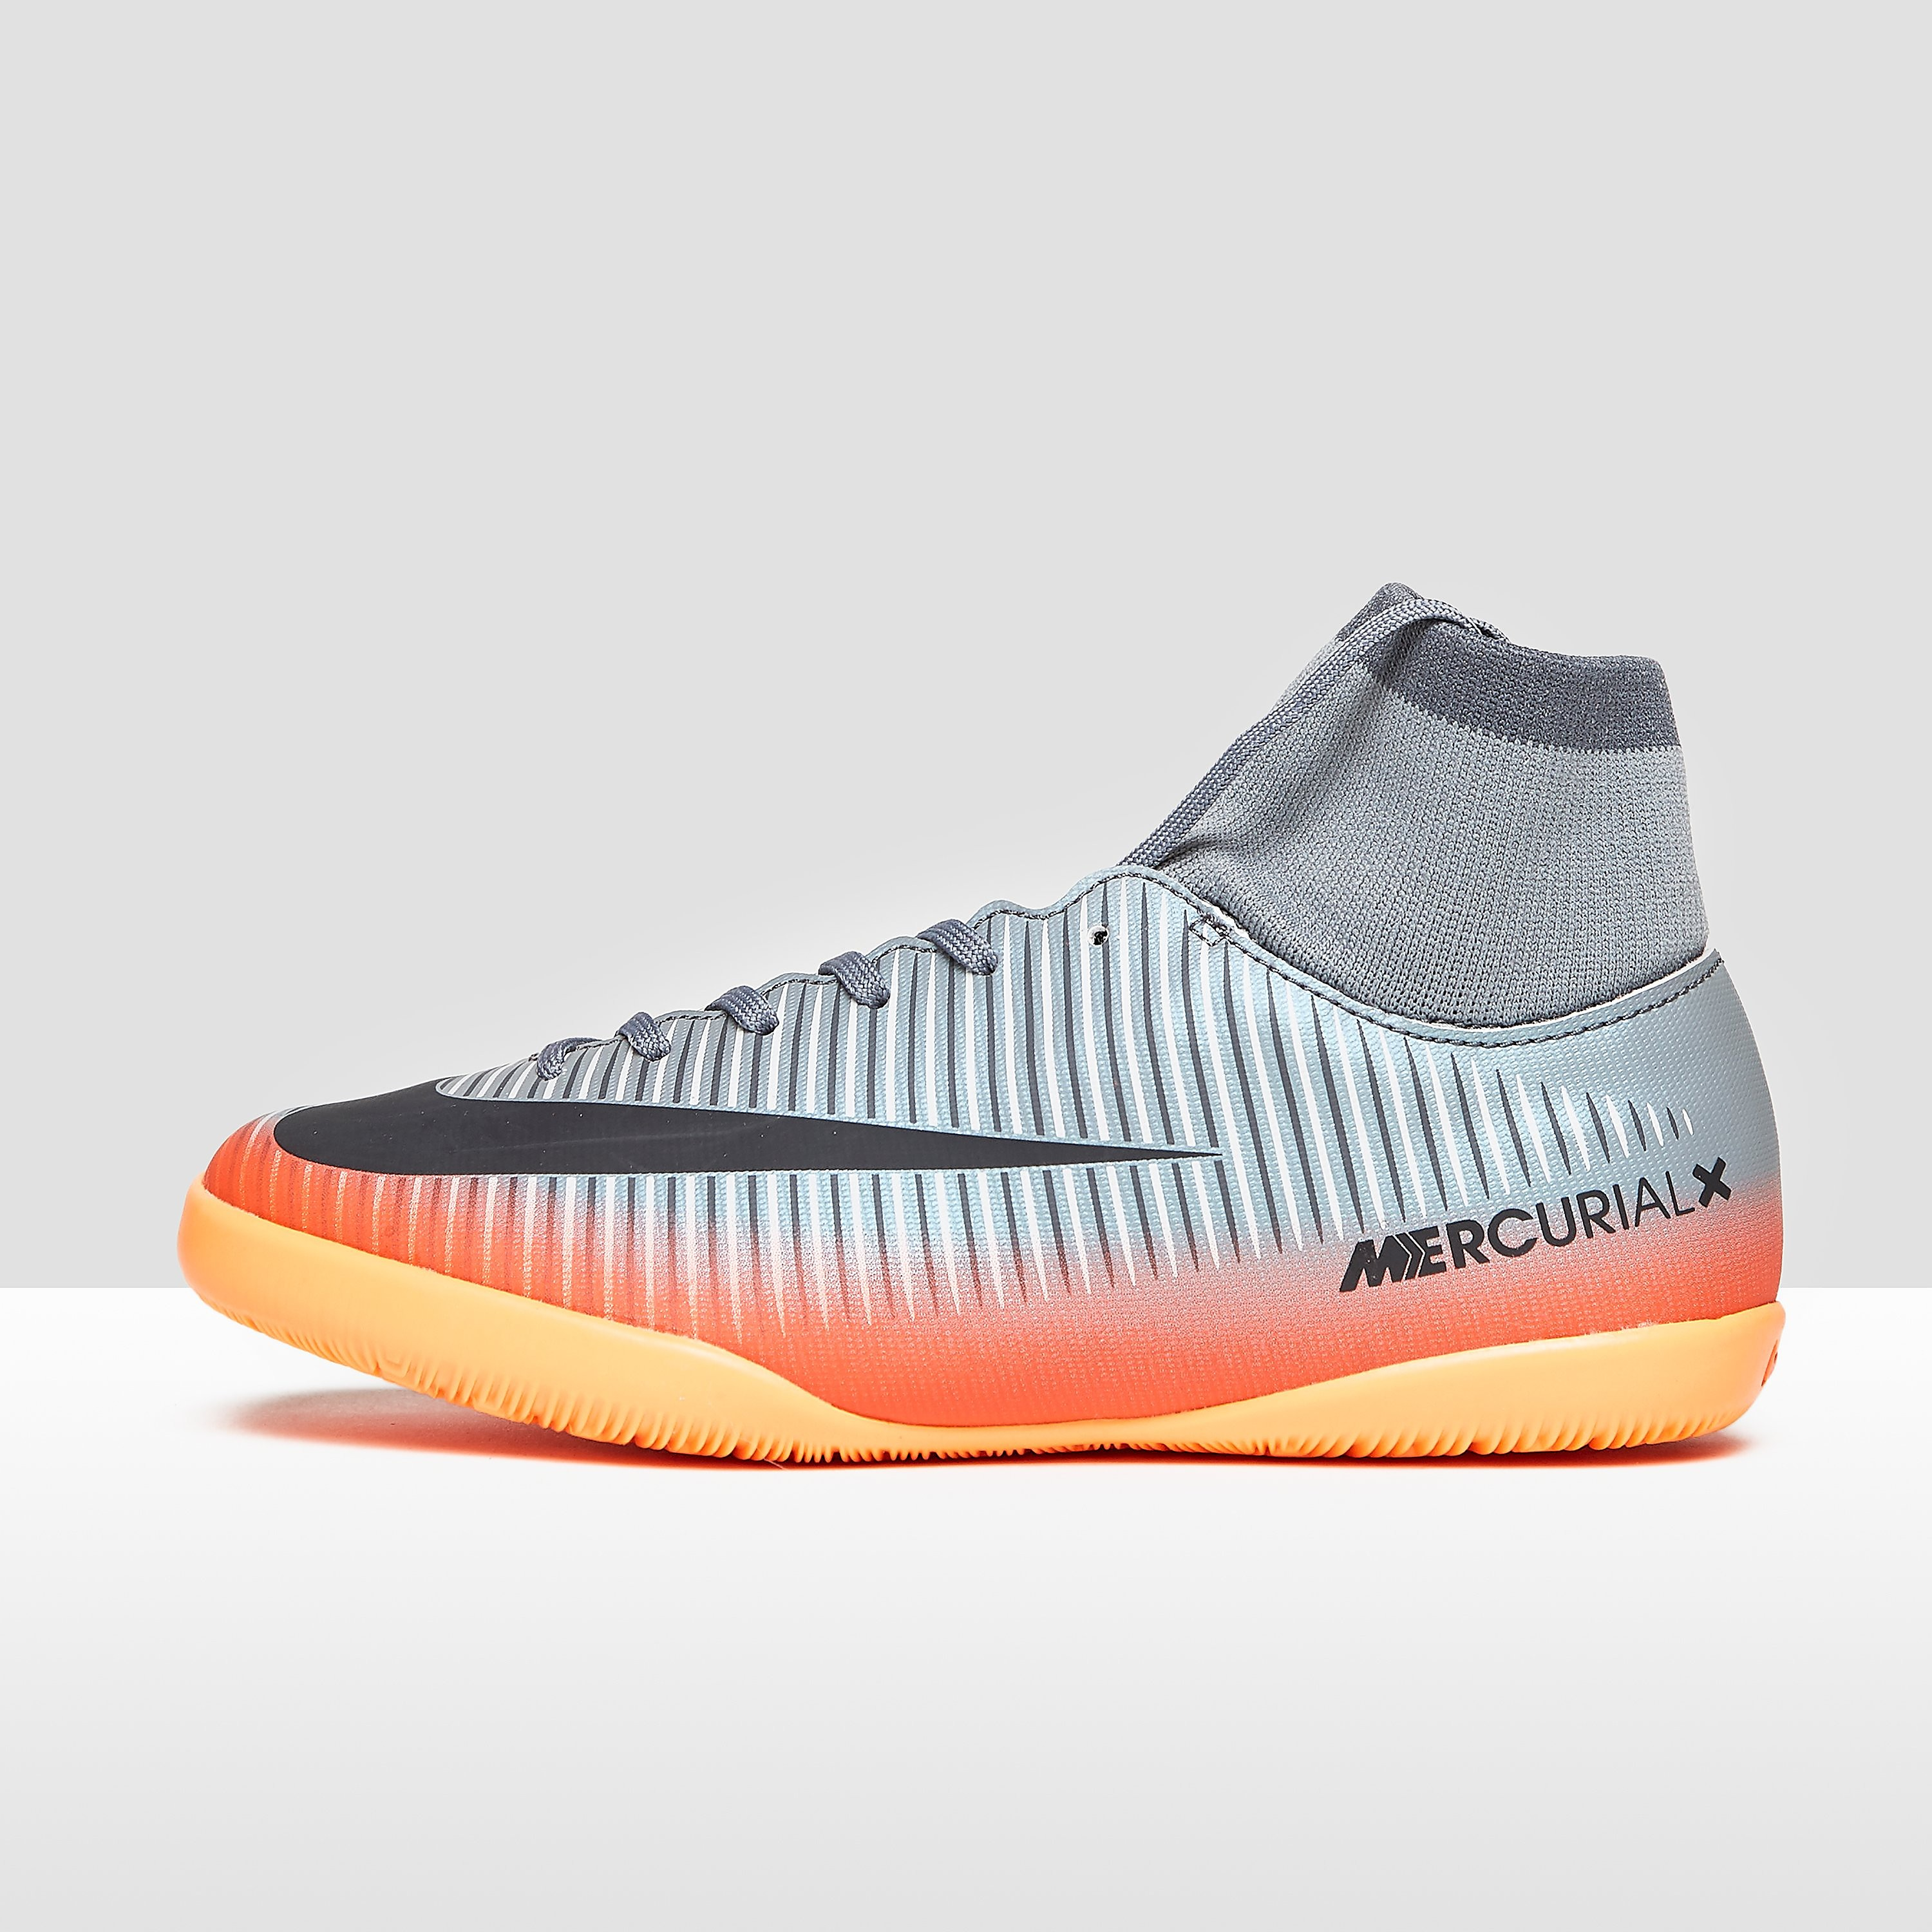 NIKE MERCURIALX VICTORY VI CR7 DF IC JR